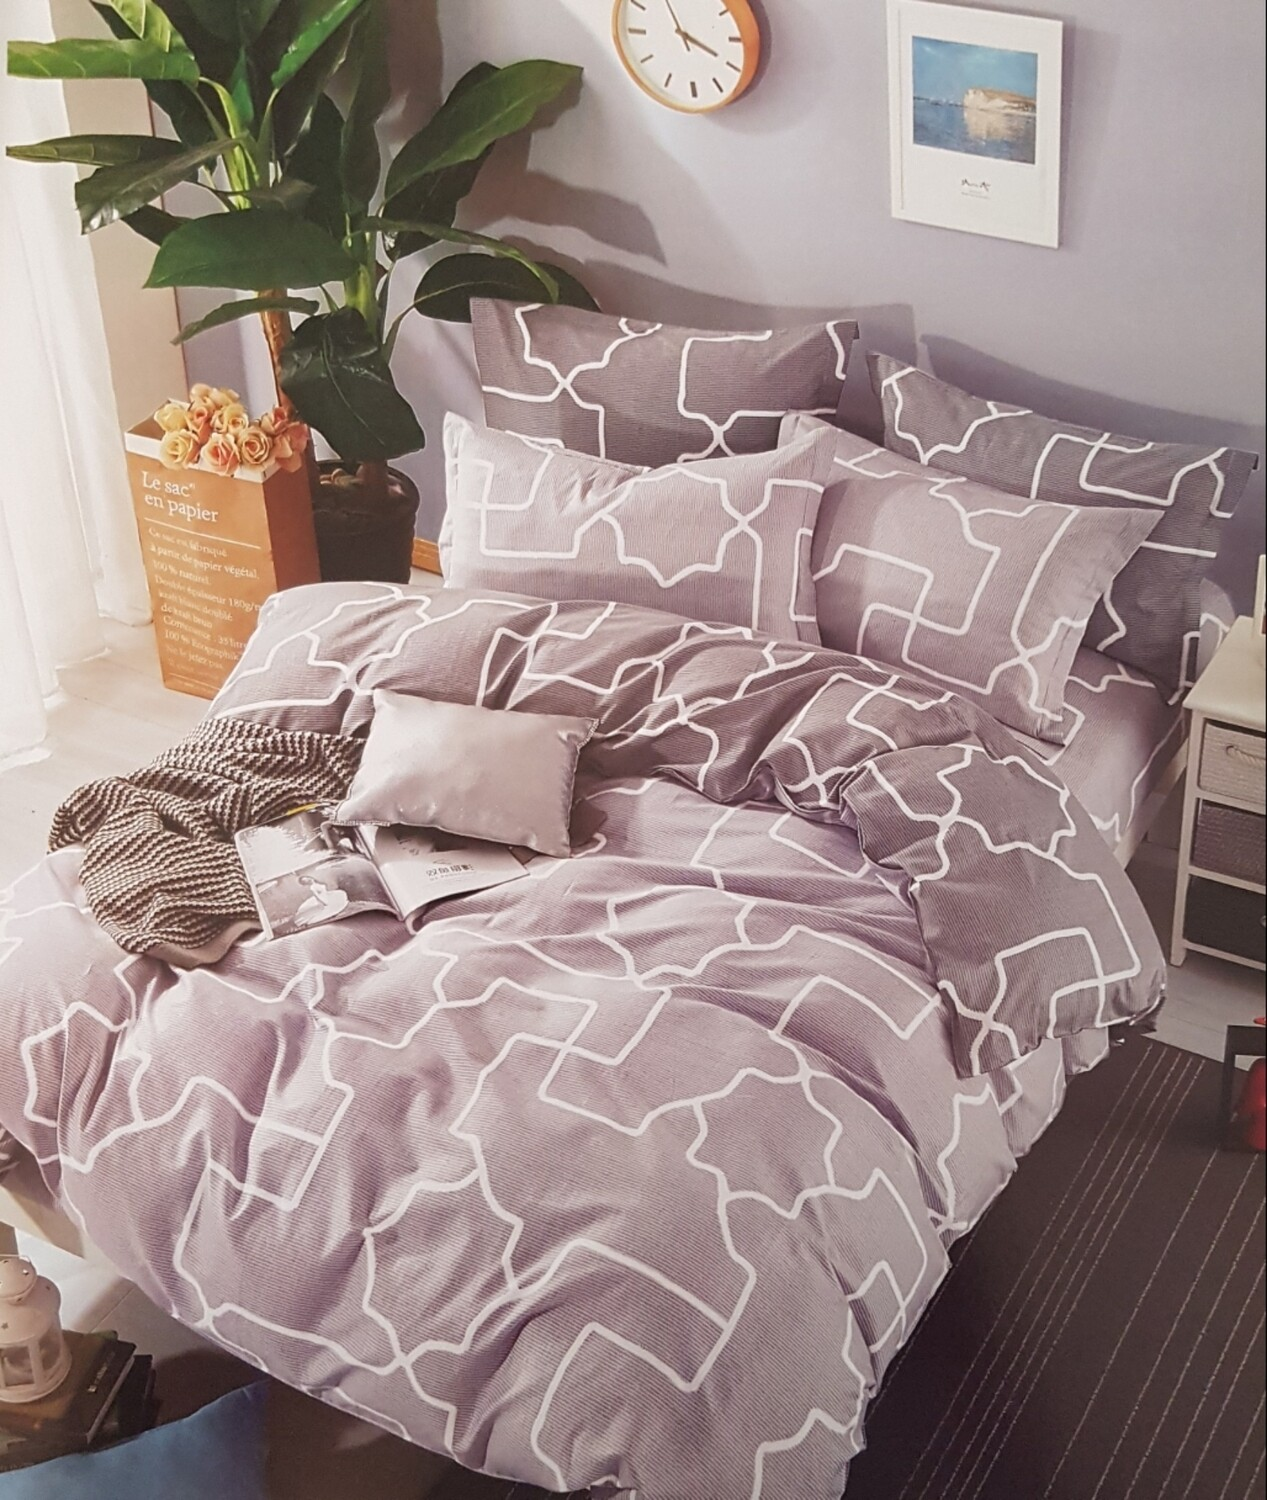 Lewis Home Avenue Bedding Set